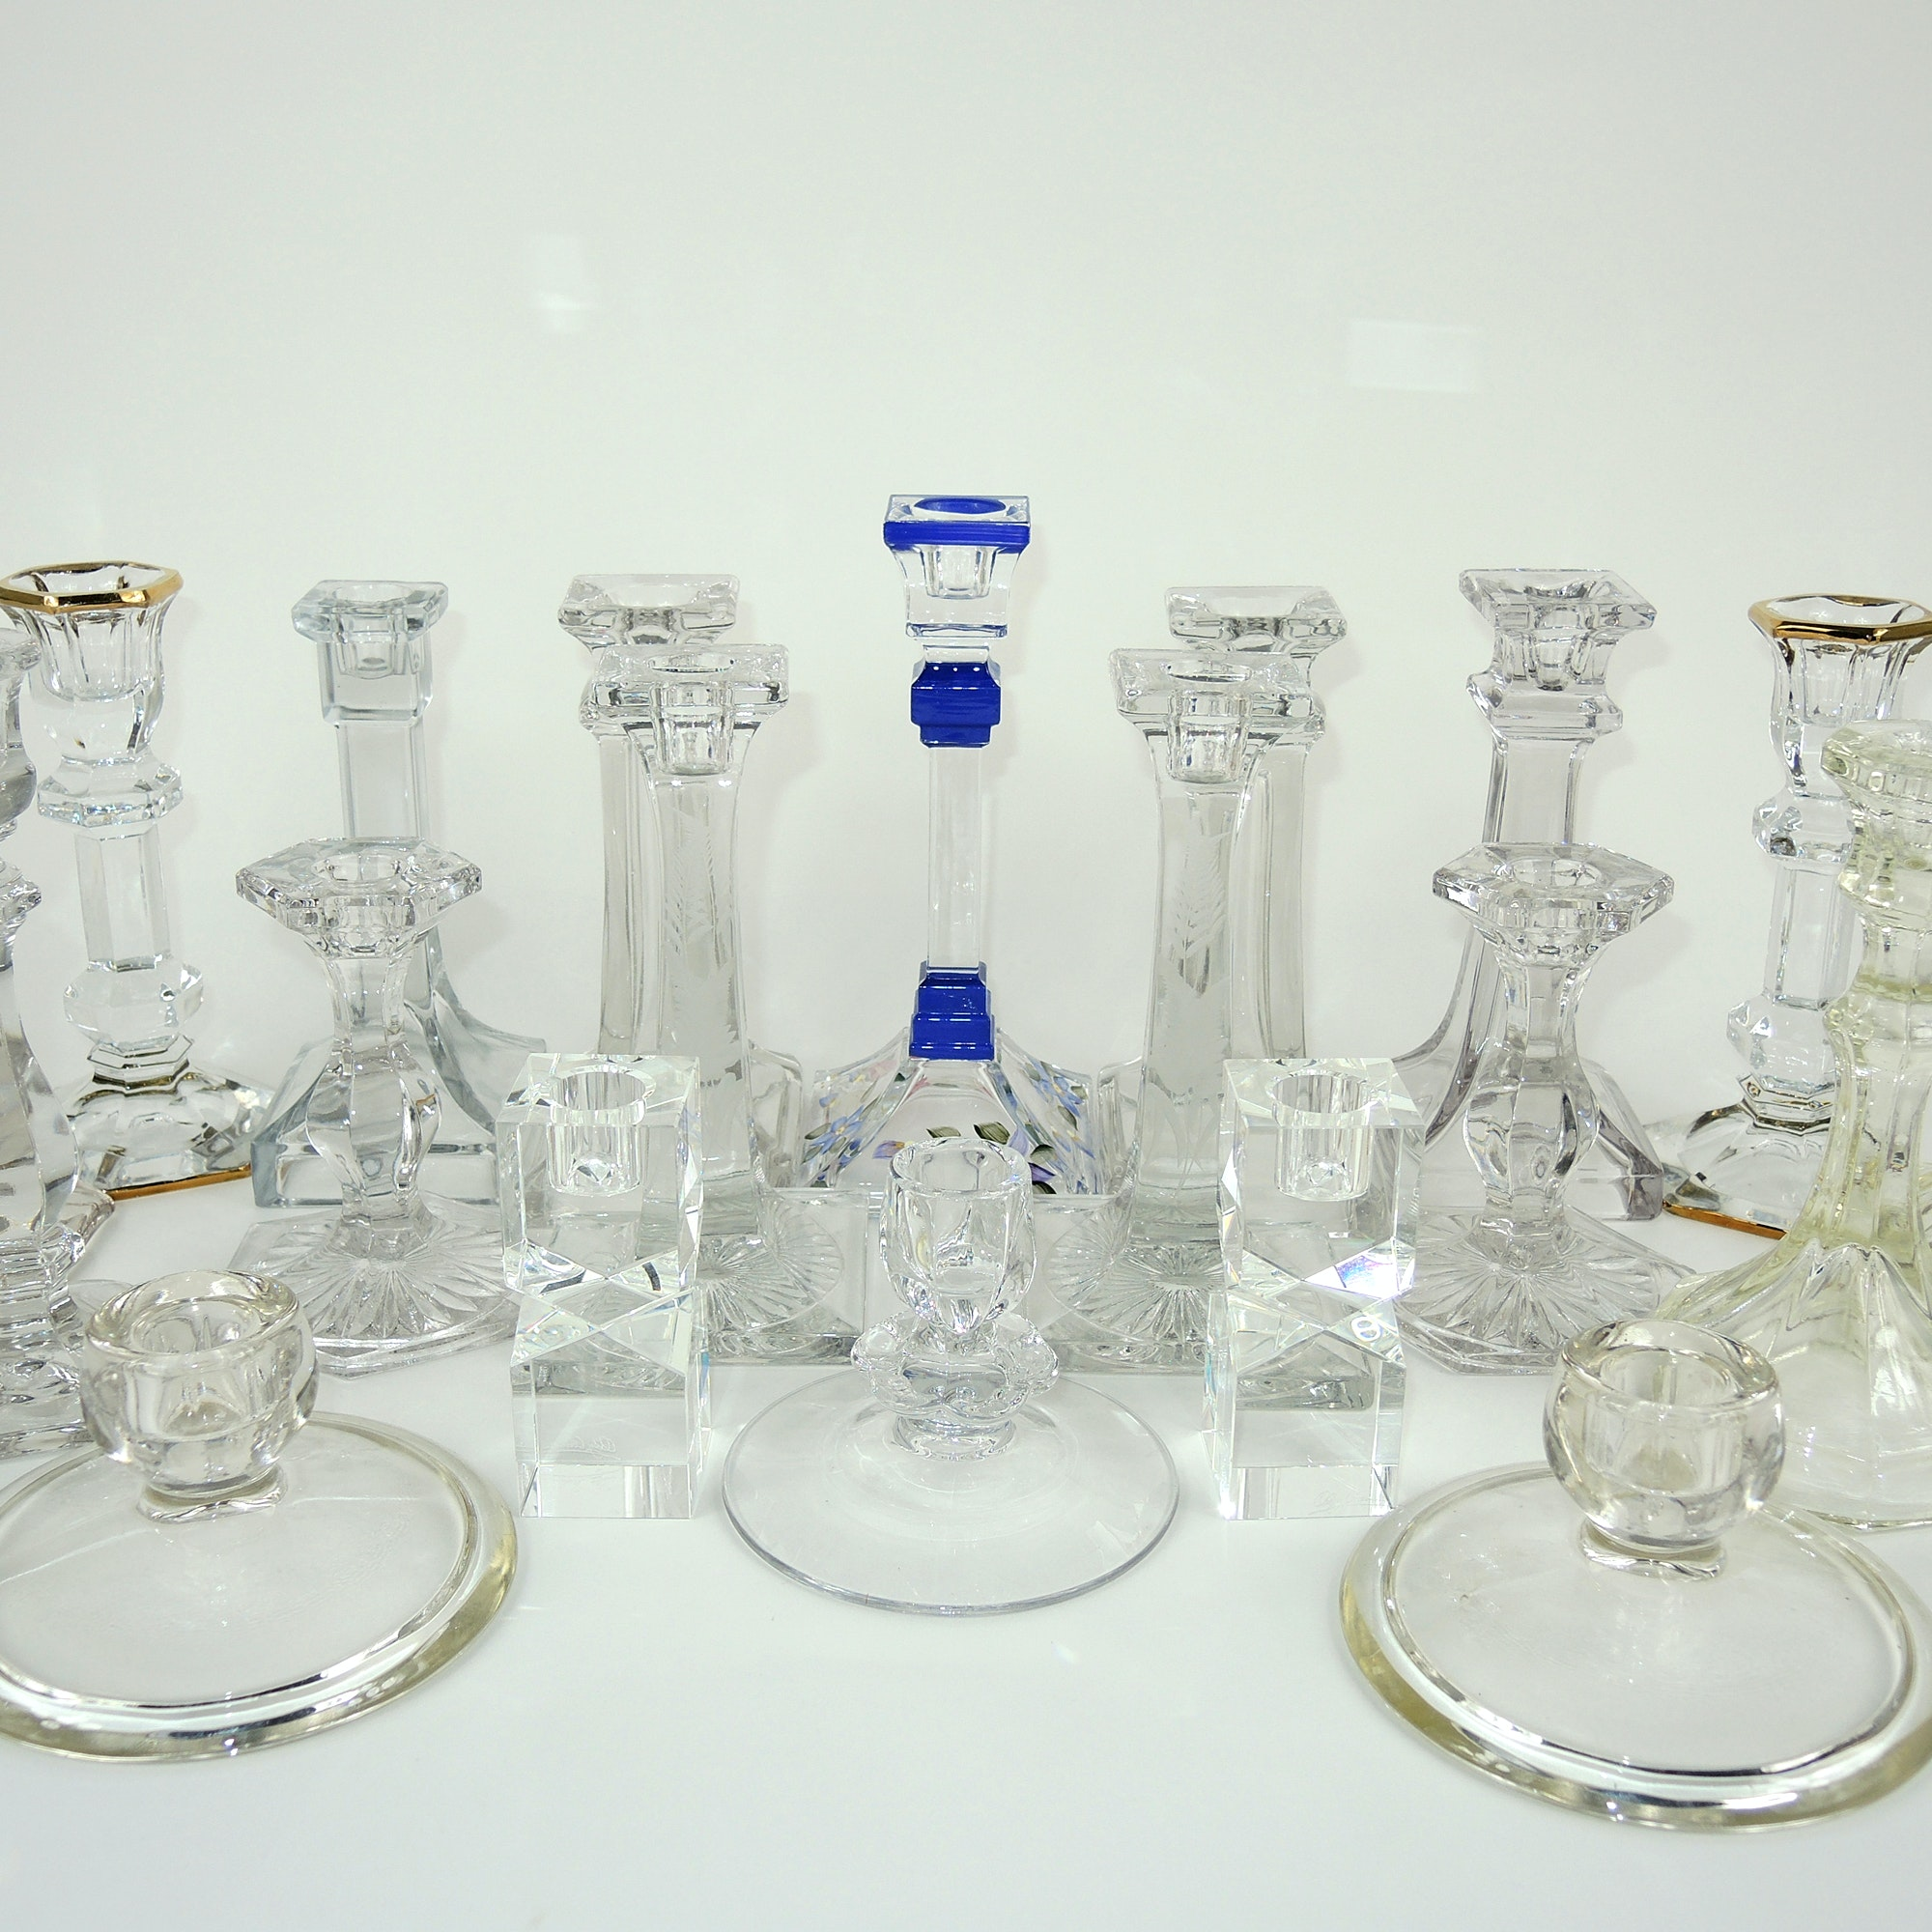 Large 20 Piece Crystal Candlestick Collection